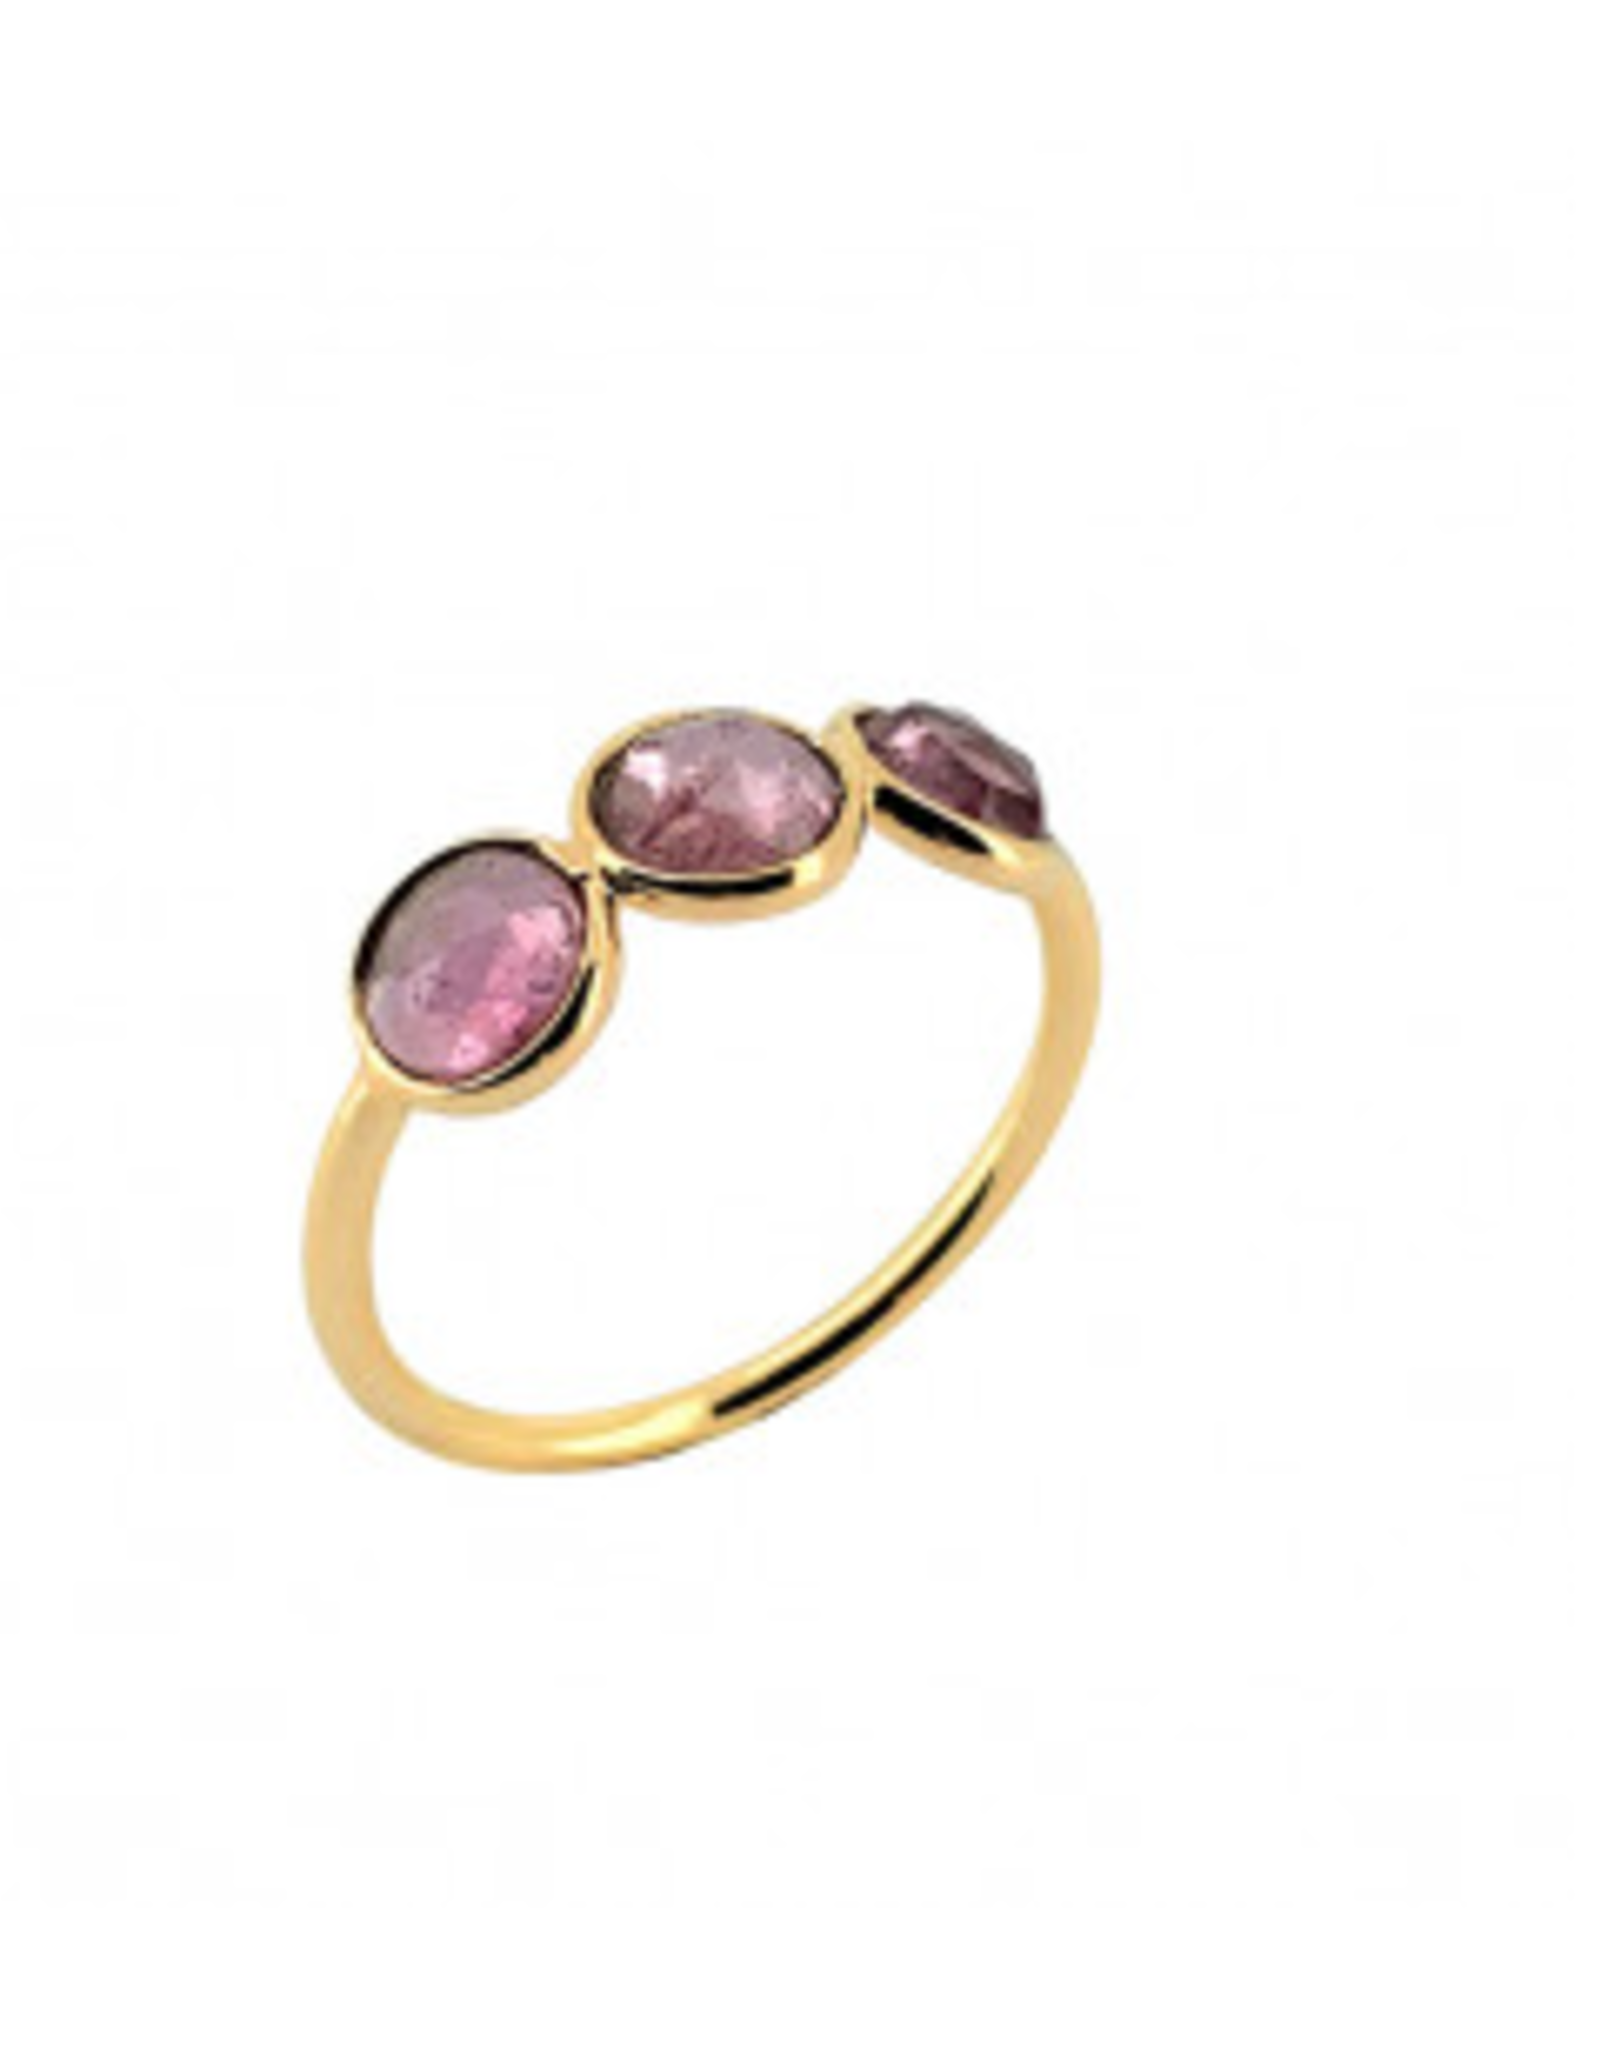 Sophie Deschamps Ring tourmaline pink size 52